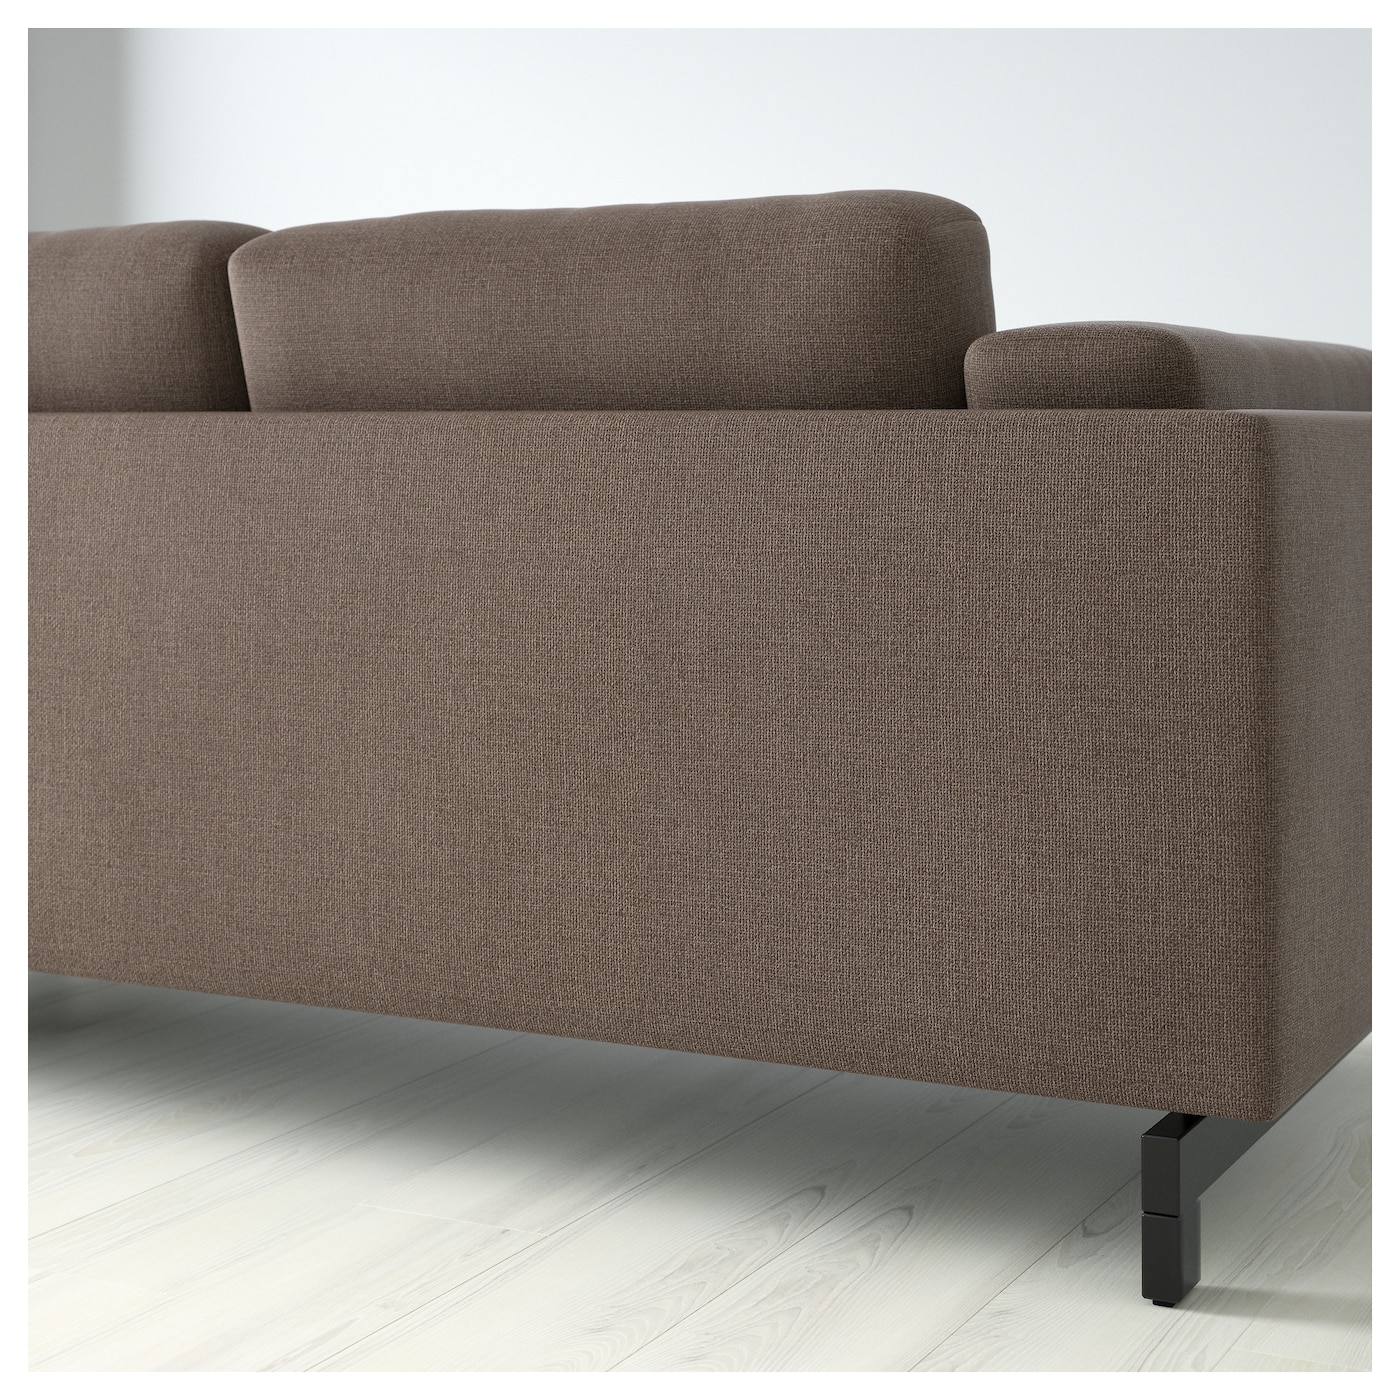 Nockeby two seat sofa w chaise longue right ten brown - Chaise longue jardin ikea ...